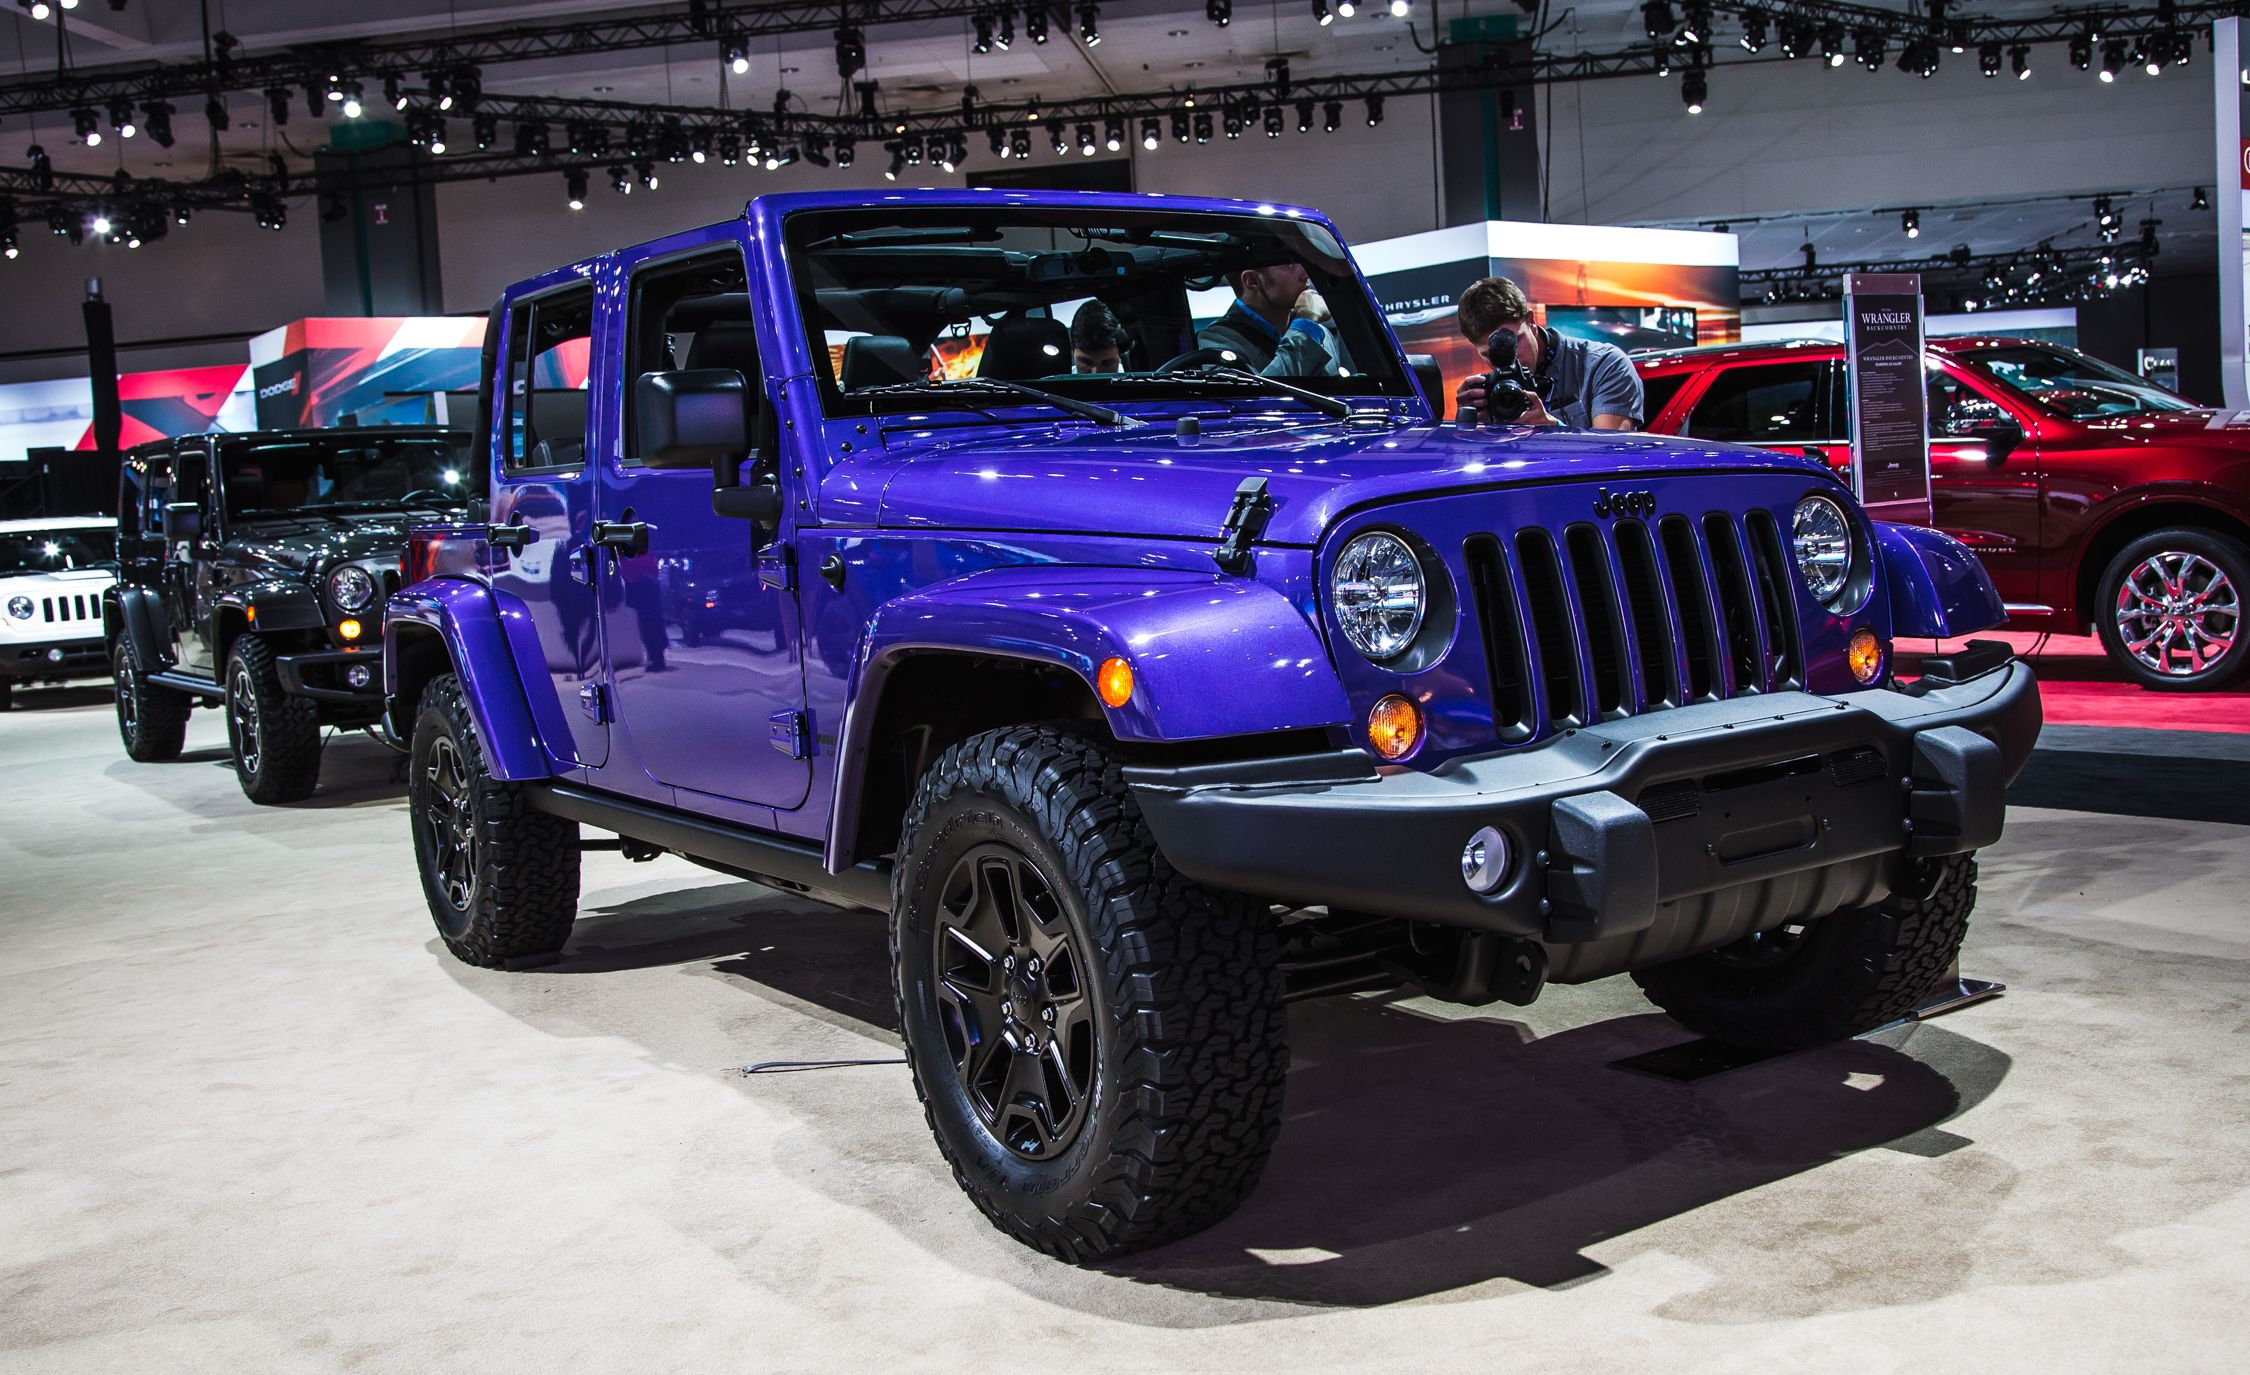 2017 jeep wrangler concept design 2017 - 2016 Jeep Wrangler Unlimited 4 Door Pictures Photo Gallery Car And Driver